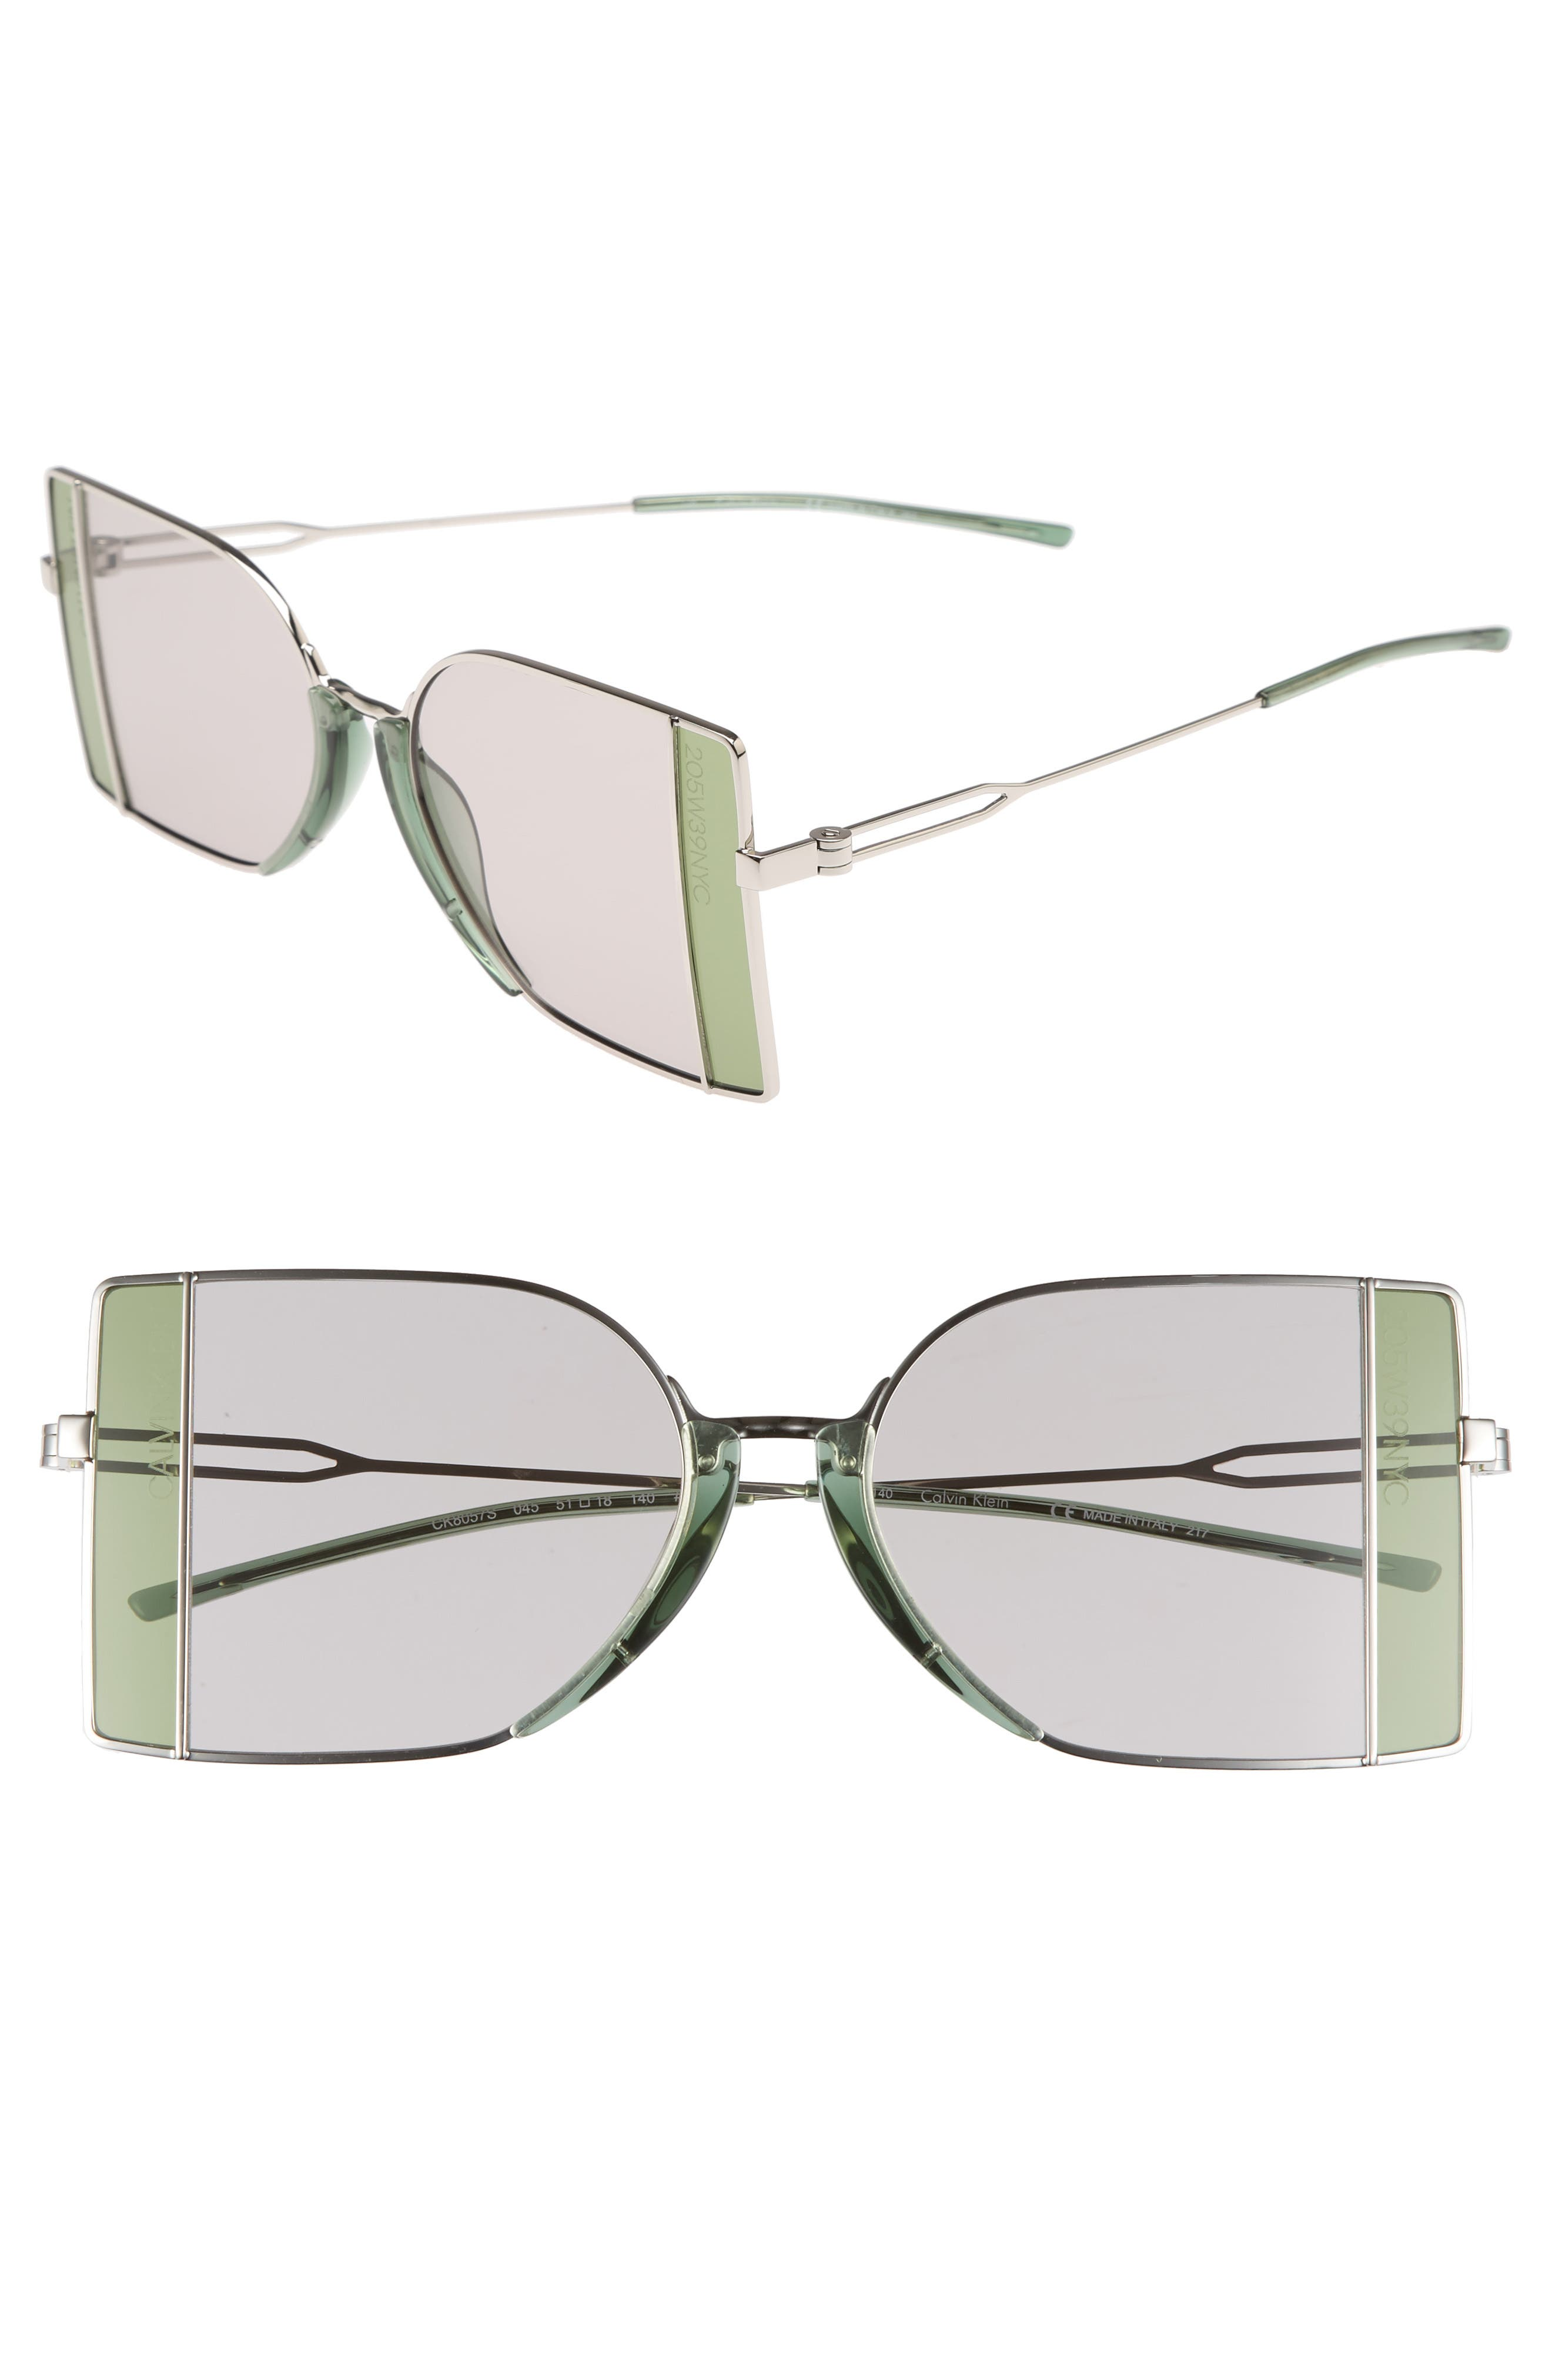 51mm Butterfly Sunglasses,                         Main,                         color, 041